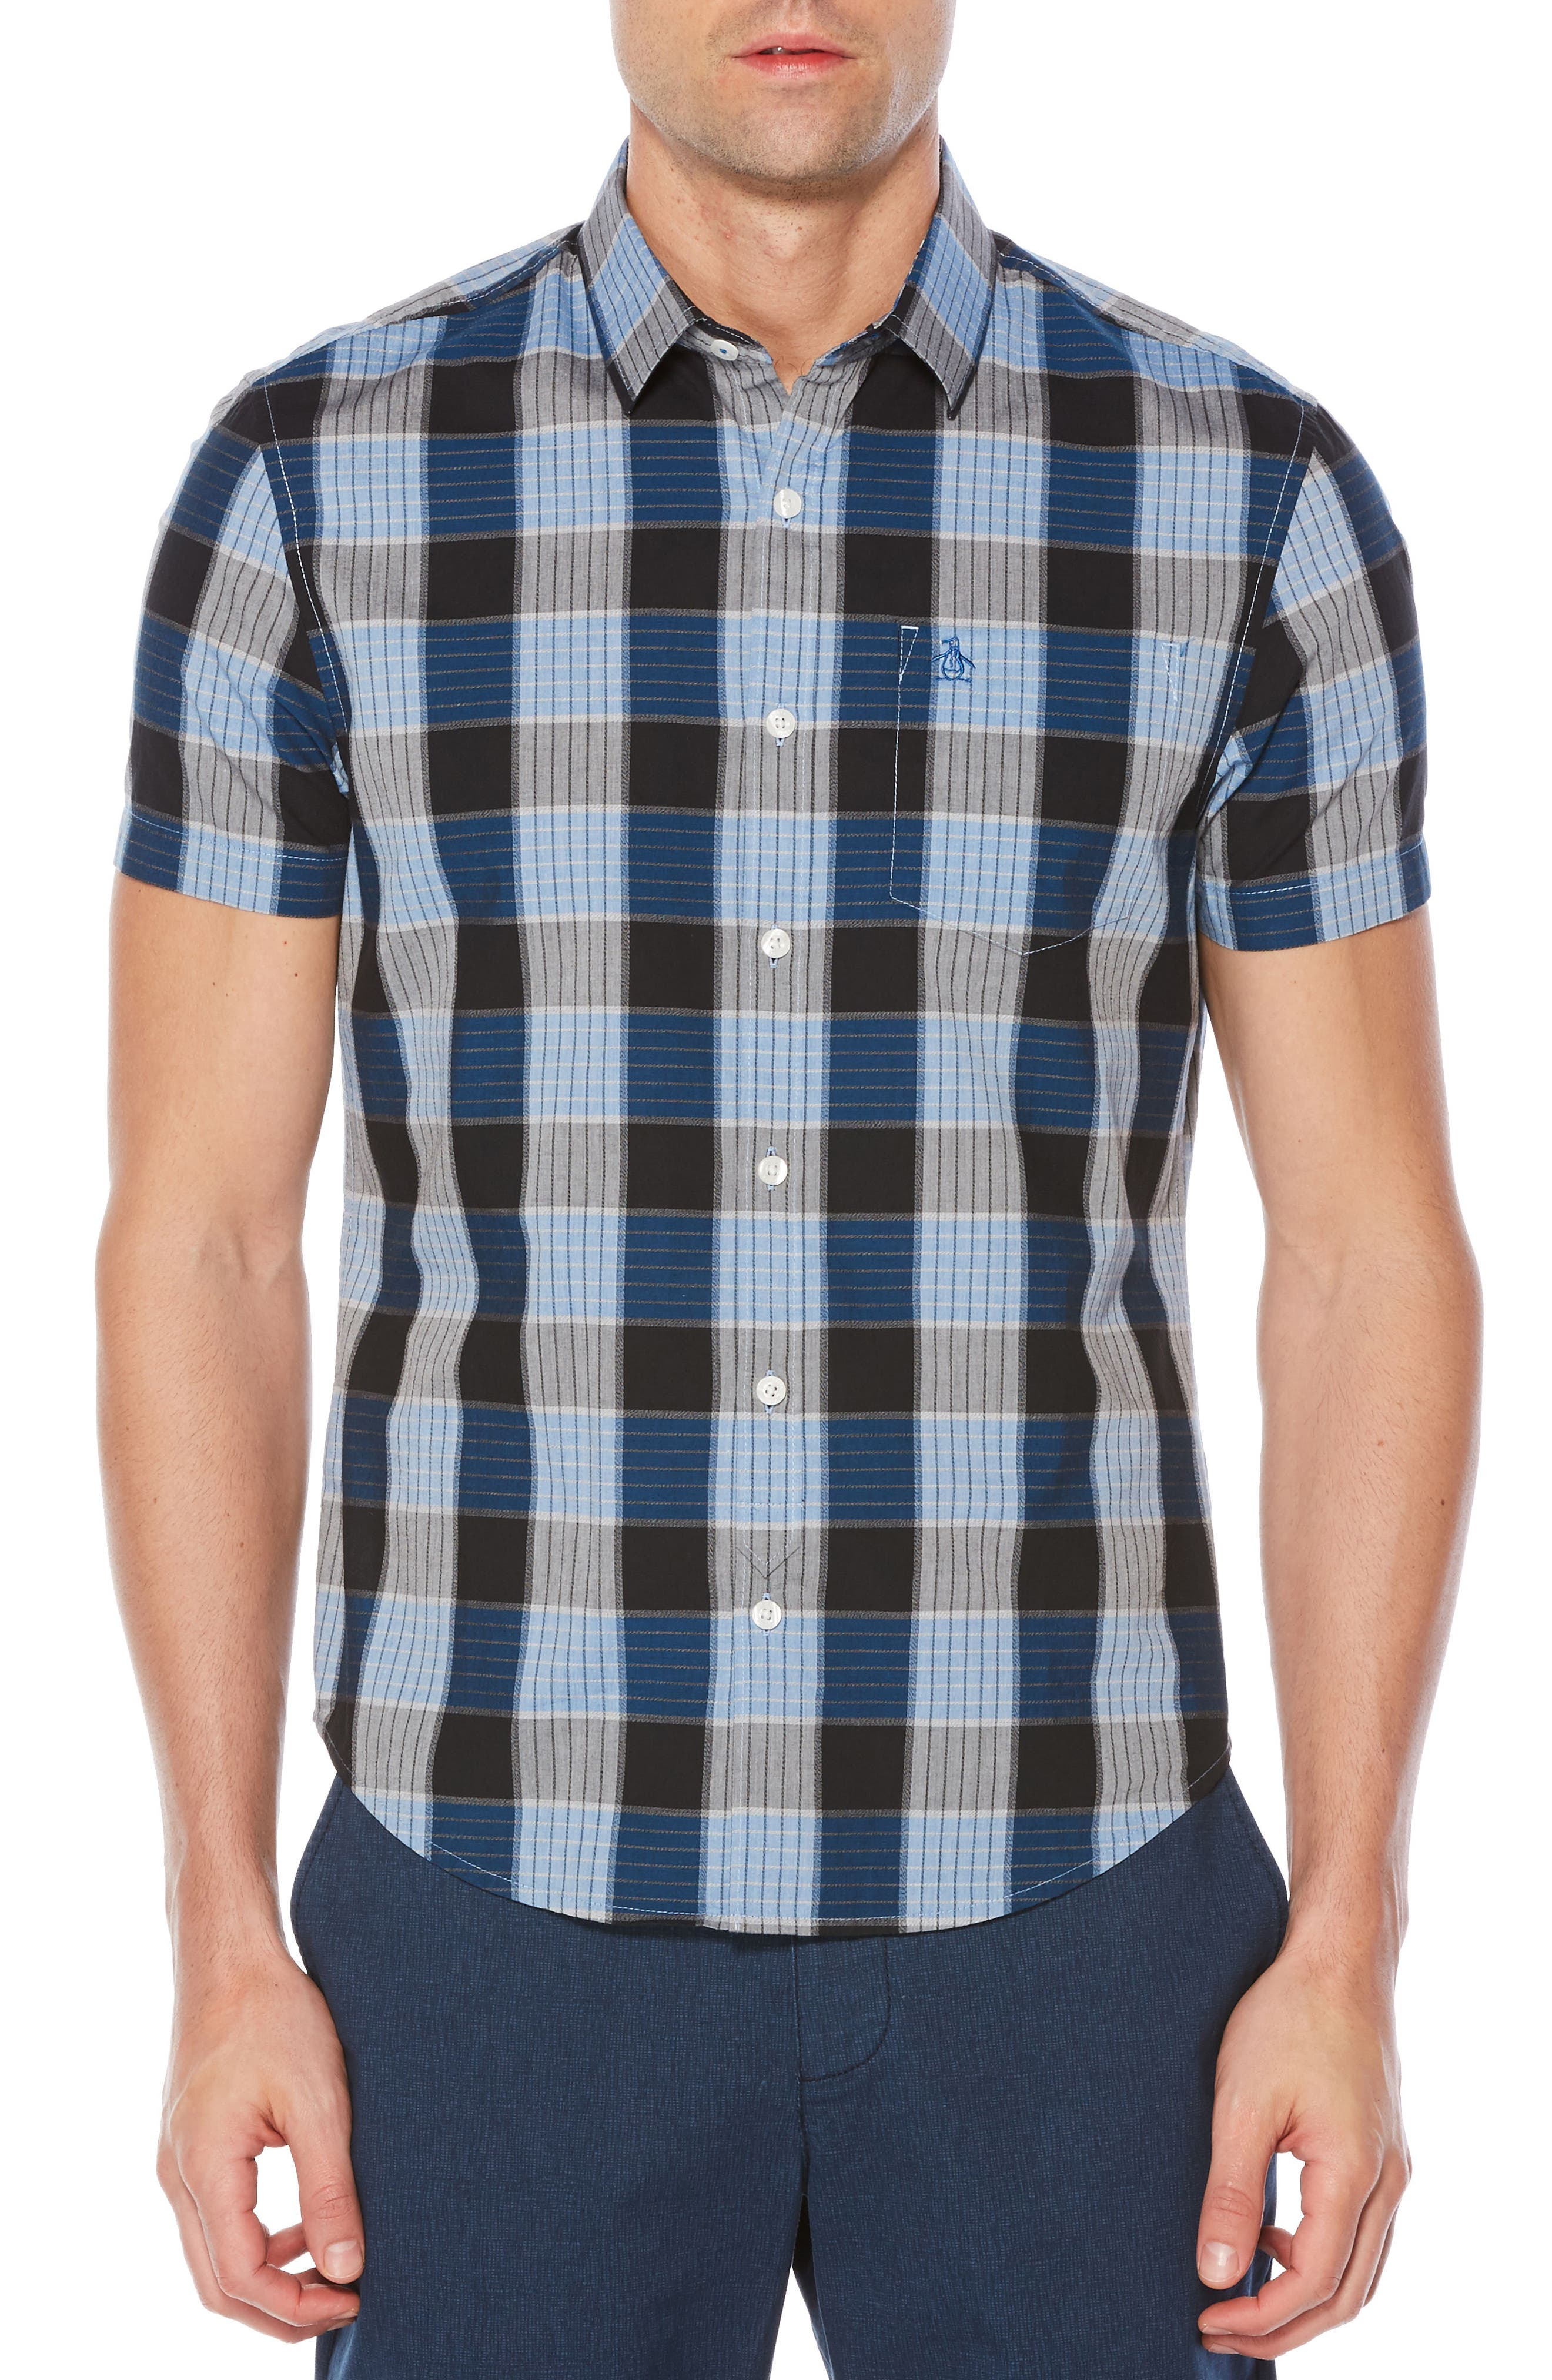 Jaspé Plaid Slim Fit Shirt,                         Main,                         color, 403